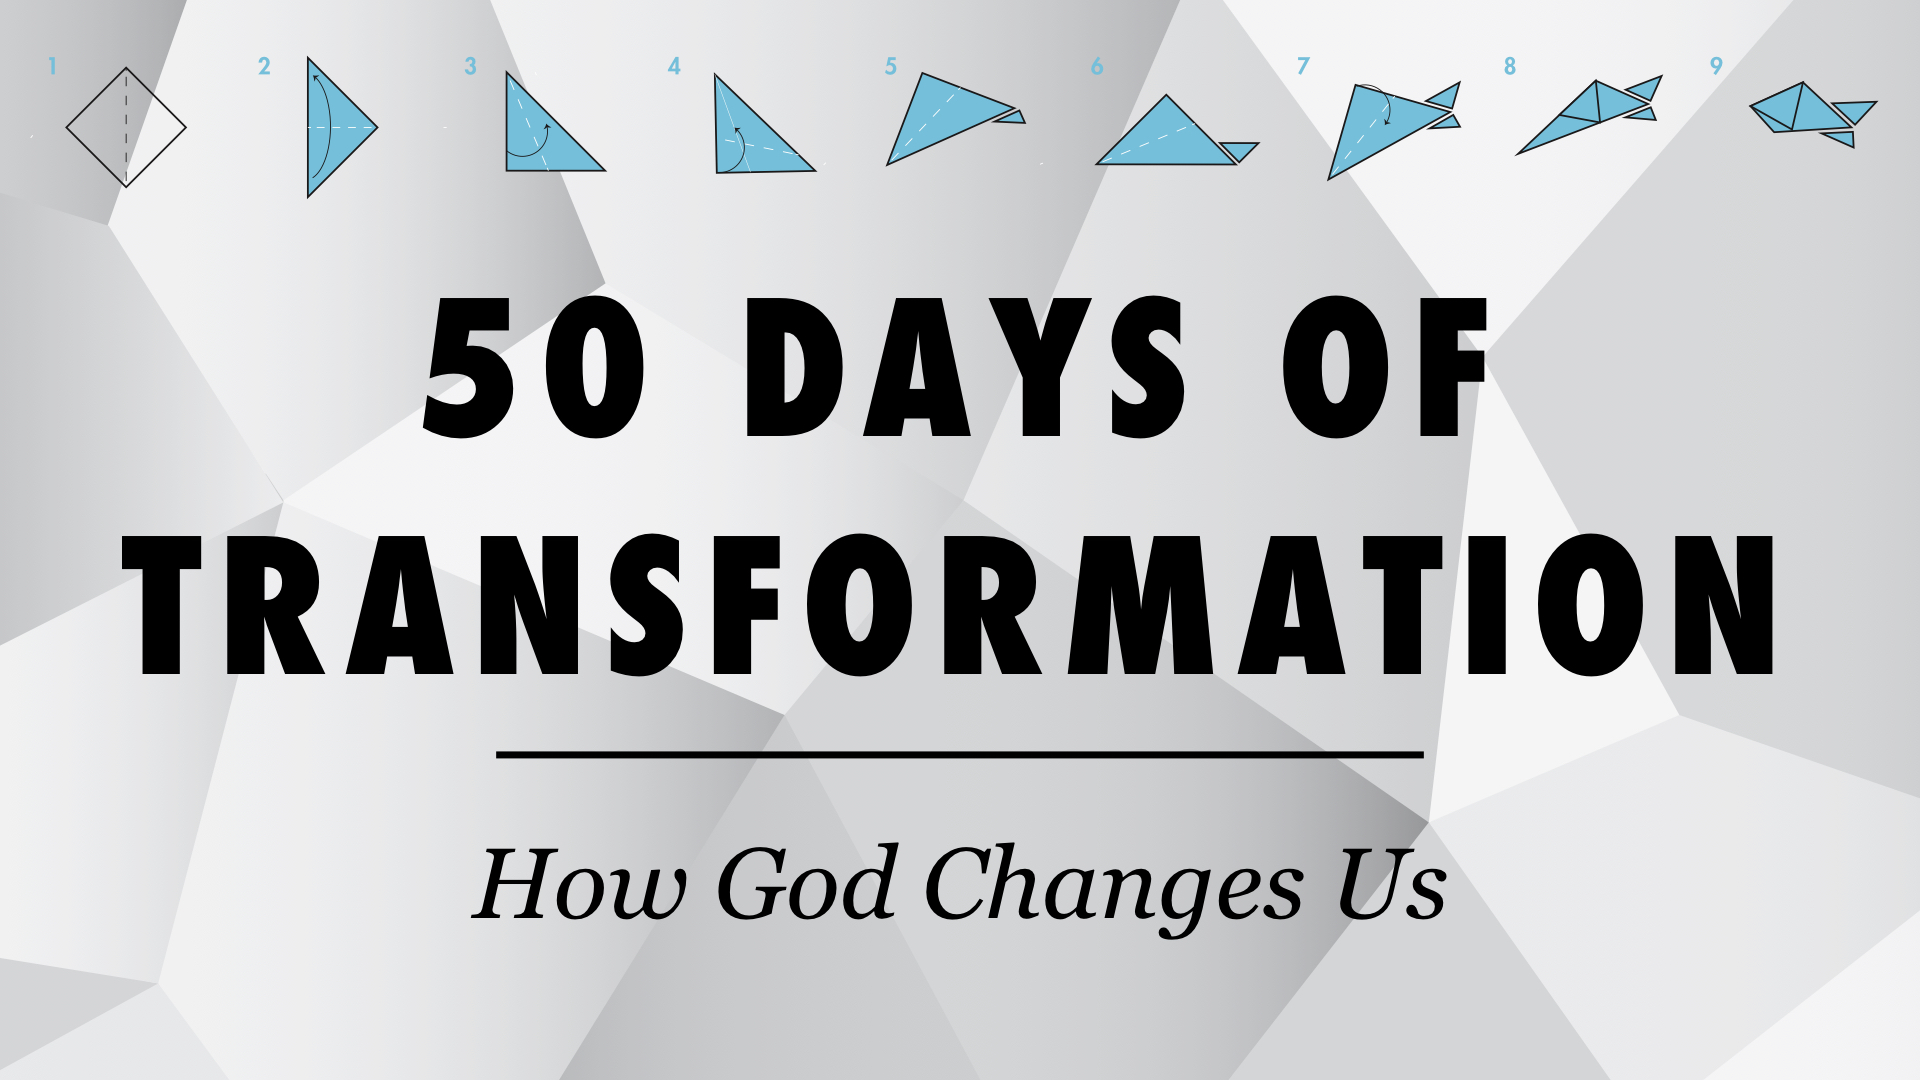 50 DAYS OF TRANSFORMATION | 2017 FALL CAMPAIGN - INTRO: SETTING PERSONAL GOALS BY FAITH | 10.8.2017 | WATCHSPIRITUAL HEALTH: HOW TO GET CLOSER TO GOD | 10.15.2017 | WATCHPHYSICAL HEALTH: FROM STRESSED TO BLESSED | 10.22.2017 | WATCHMENTAL HEALTH: CHANGE YOUR LIFE BY CHANGING YOUR MIND | 10.29.2017 | WATCHEMOTIONAL HEALTH: HOW TO DEAL WITH HOW YOU FEEL | 11.5.2017 | WATCHRELATIONAL: FACING THE FEARS THAT RUIN RELATIONSHIPS | 11.12.2017 | WATCHFINANCIAL: TRANSFORMING HOW I SEE & USE MONEY | 11.19.207 | WATCHVOCATIONAL: FACING GIANTS IN LIFE & WORK | 12.3.2017 | WATCH